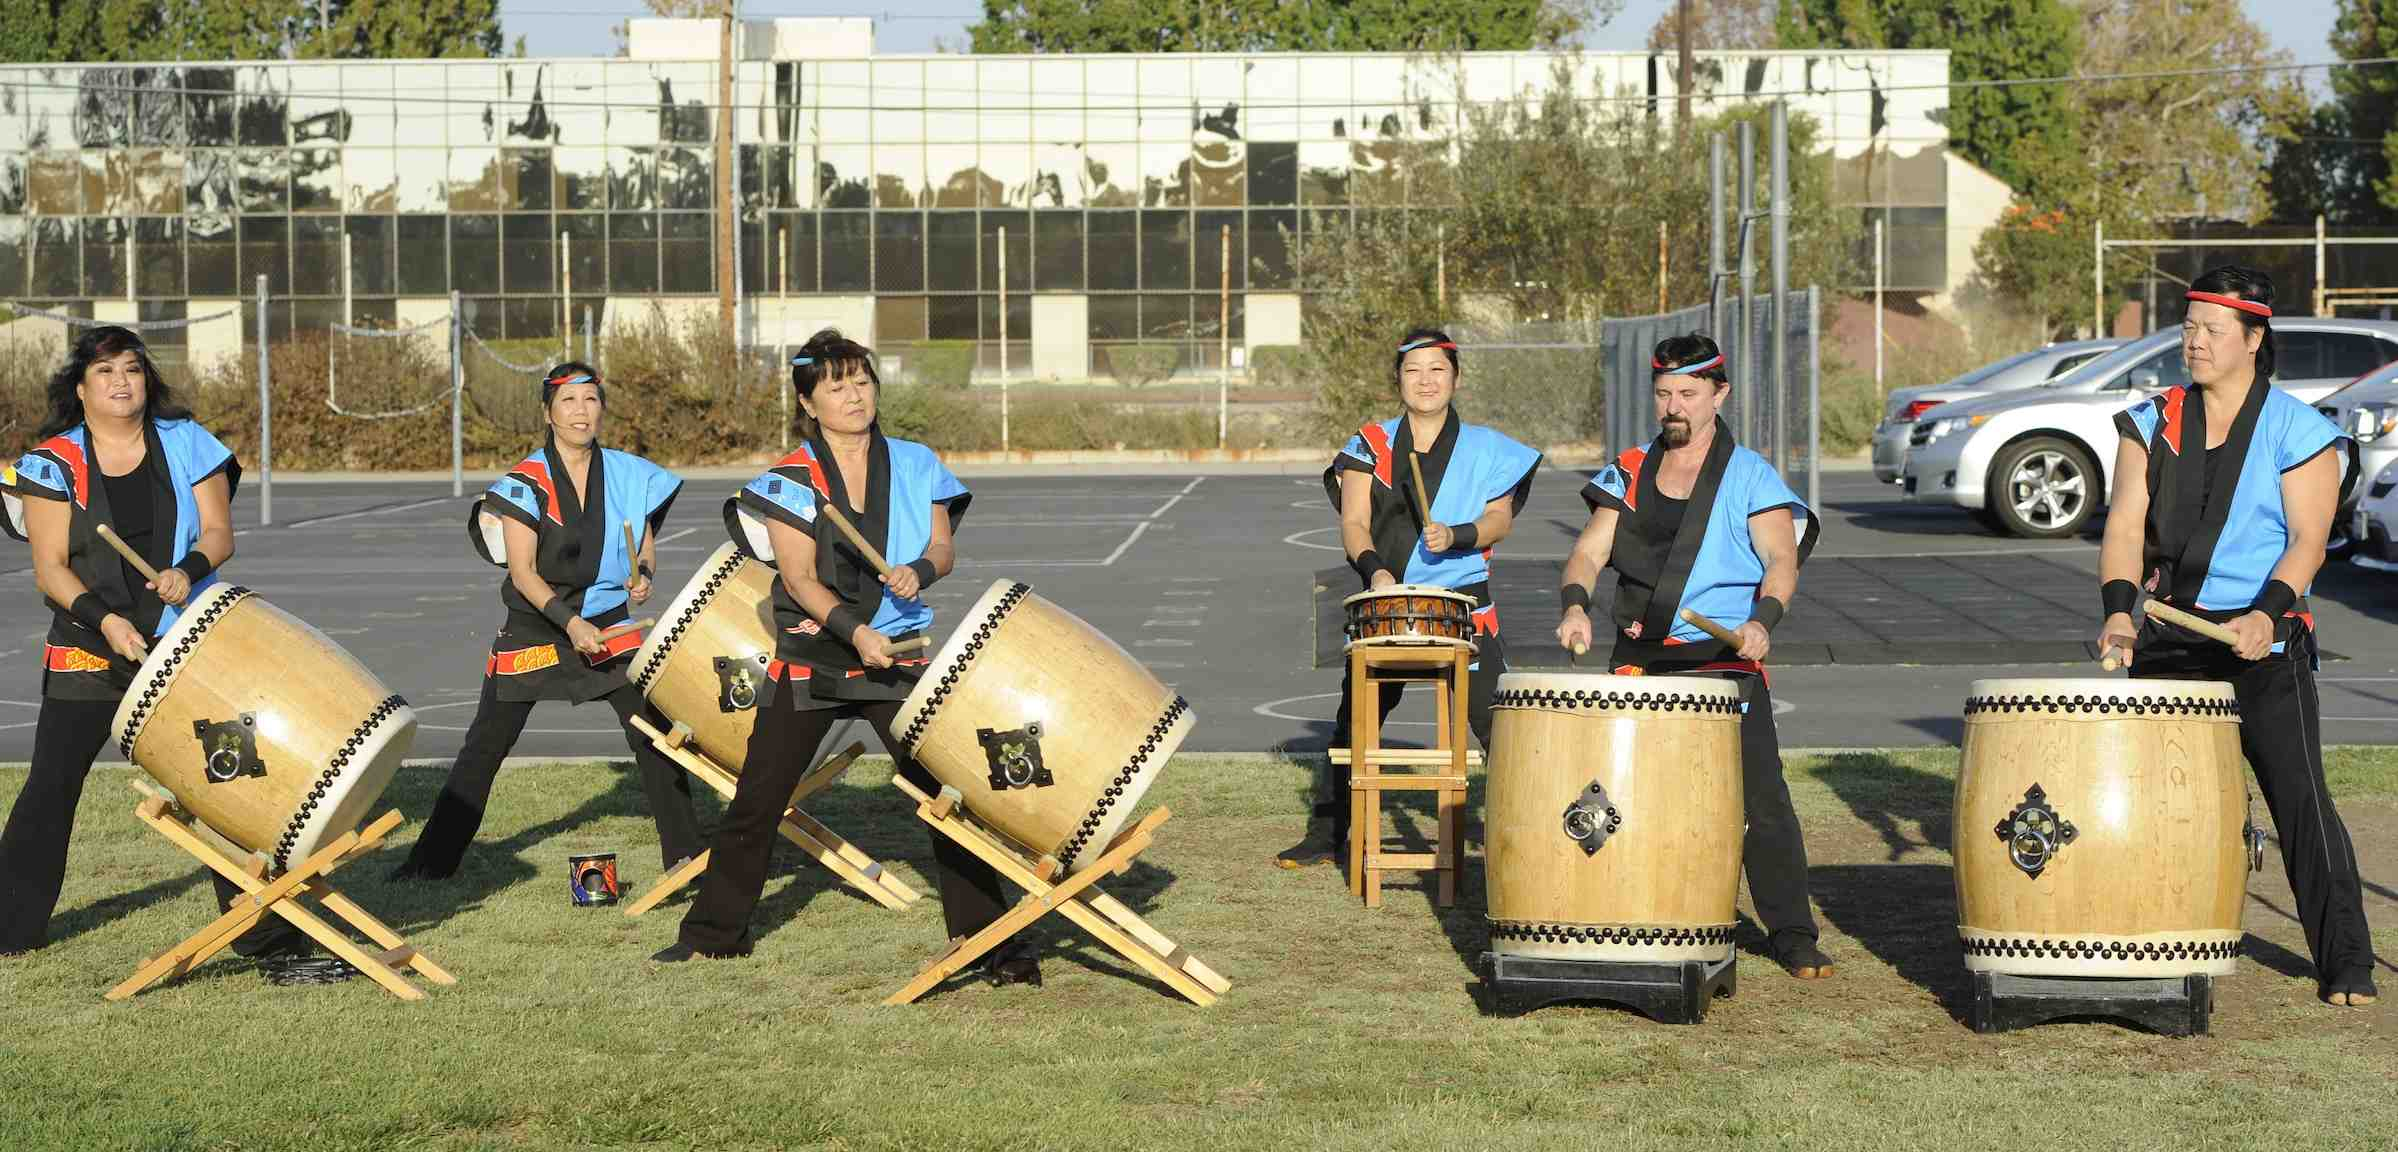 The program opened with drumming by Hikari Taiko. (Photo by Mark Savage)